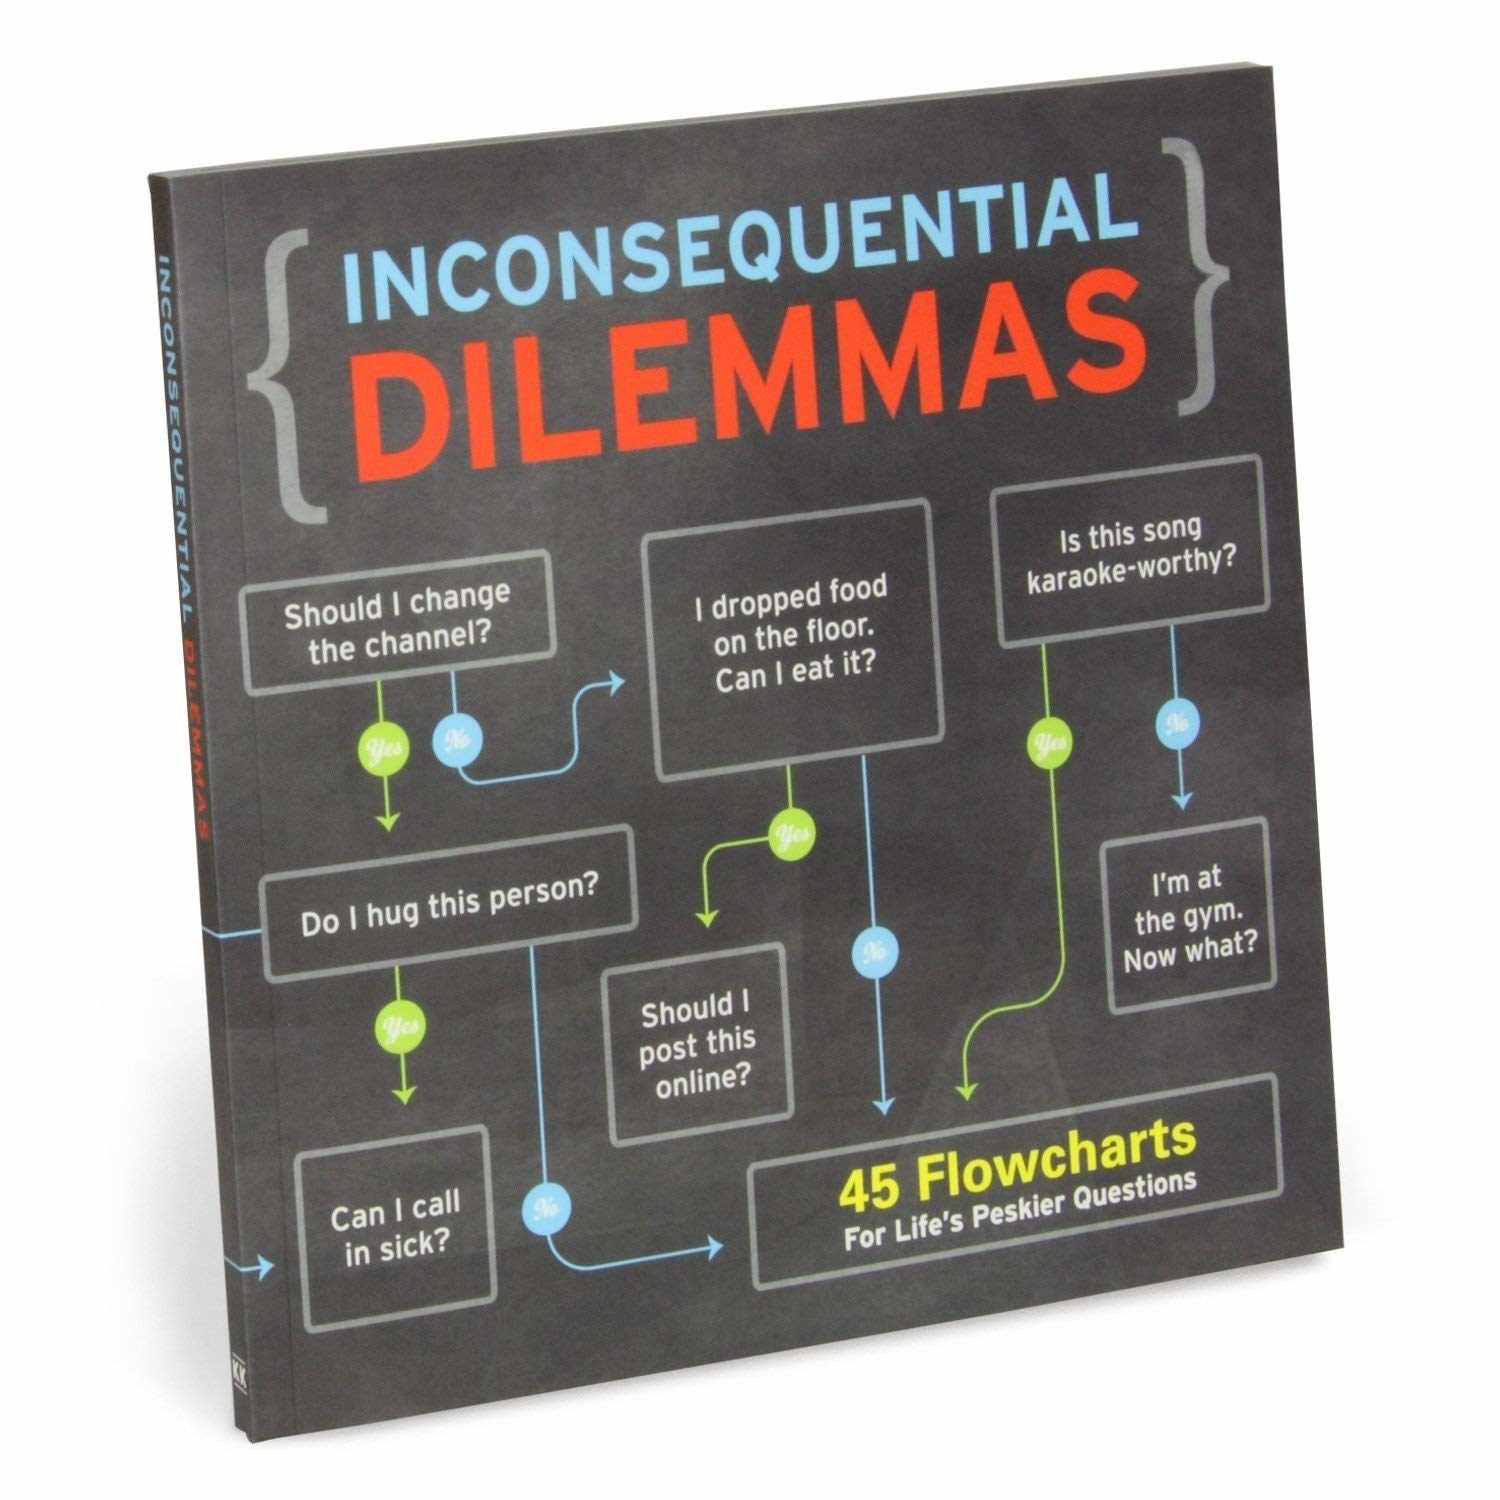 The cover of Knock Knock Inconsequential Dilemmas: 45 Flowcharts For Life's Peskier Questions